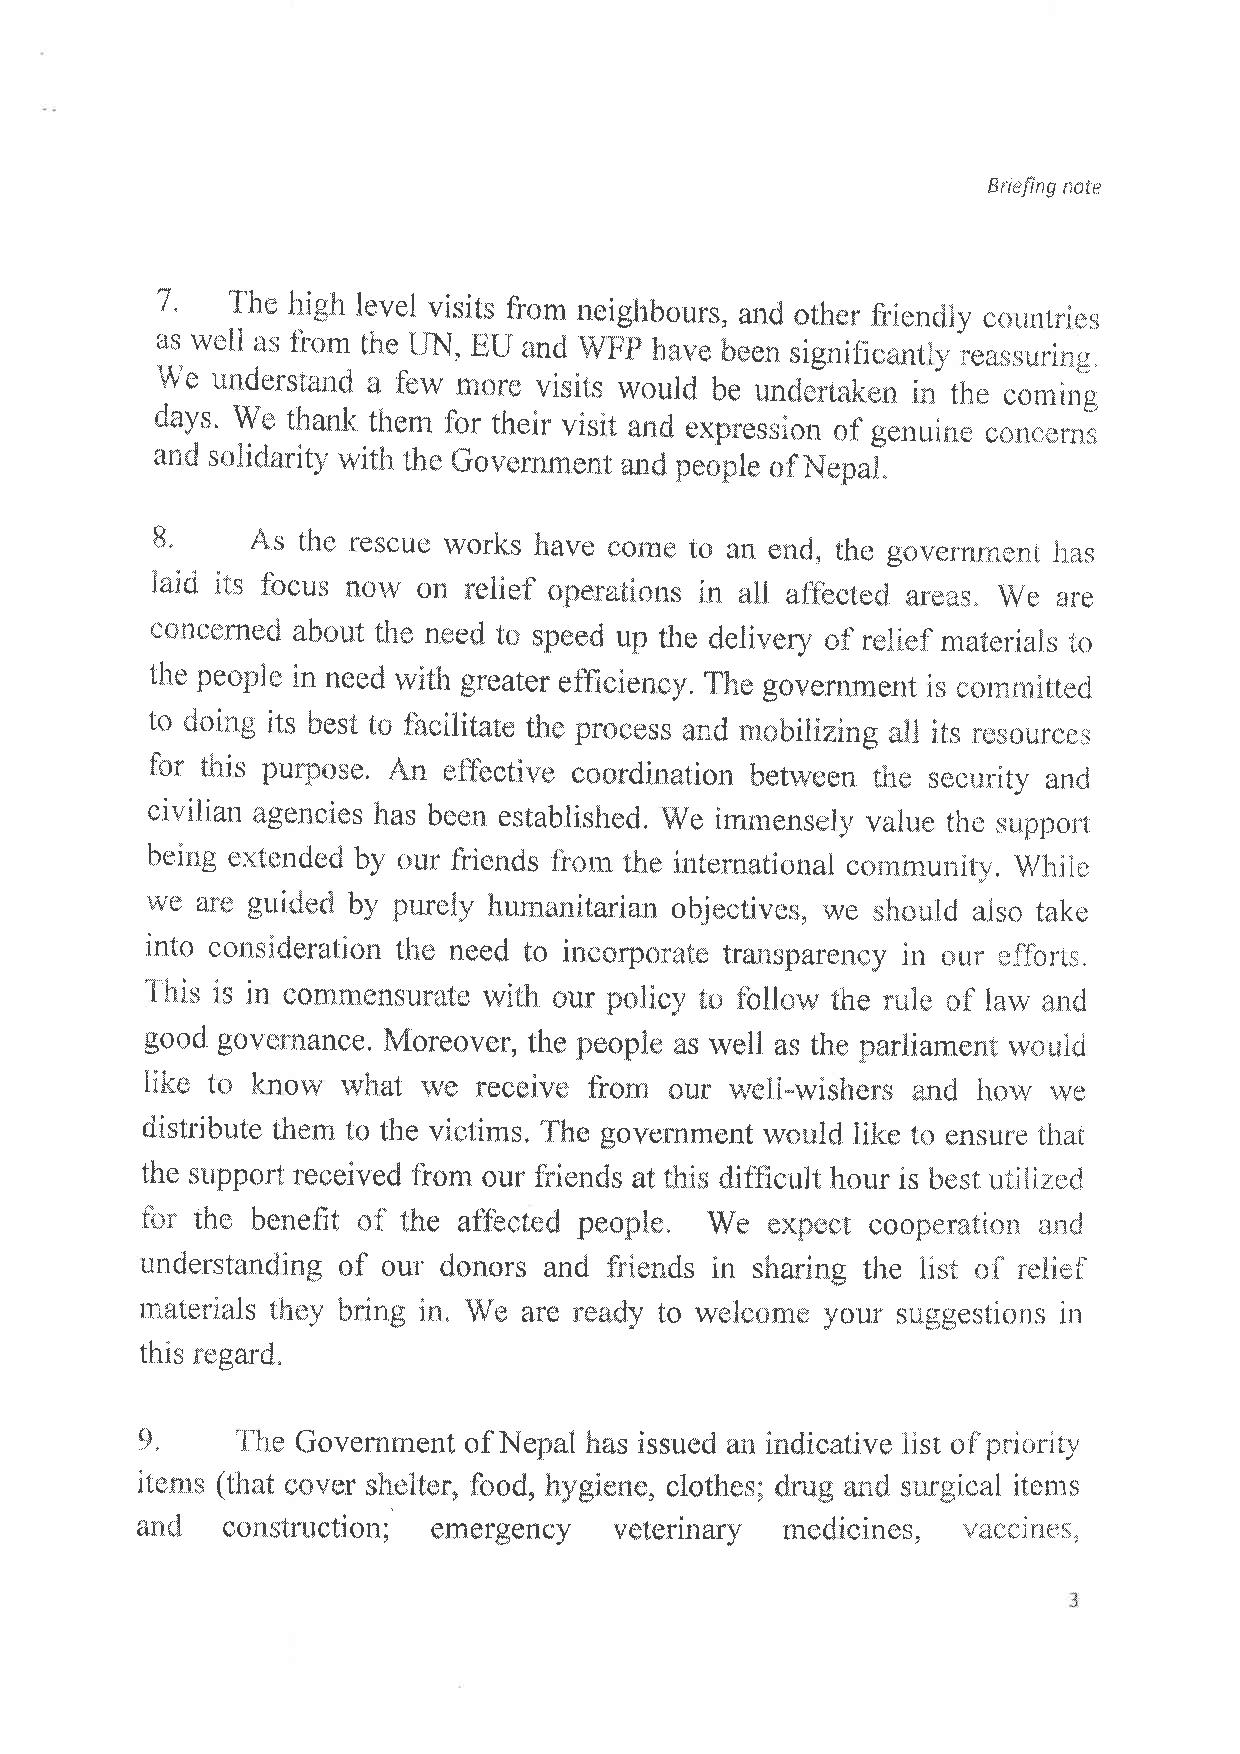 Briefing note ministry of foreign affairs nepal embassy of nepal briefing note ministry of foreign affairs nepal falaconquin